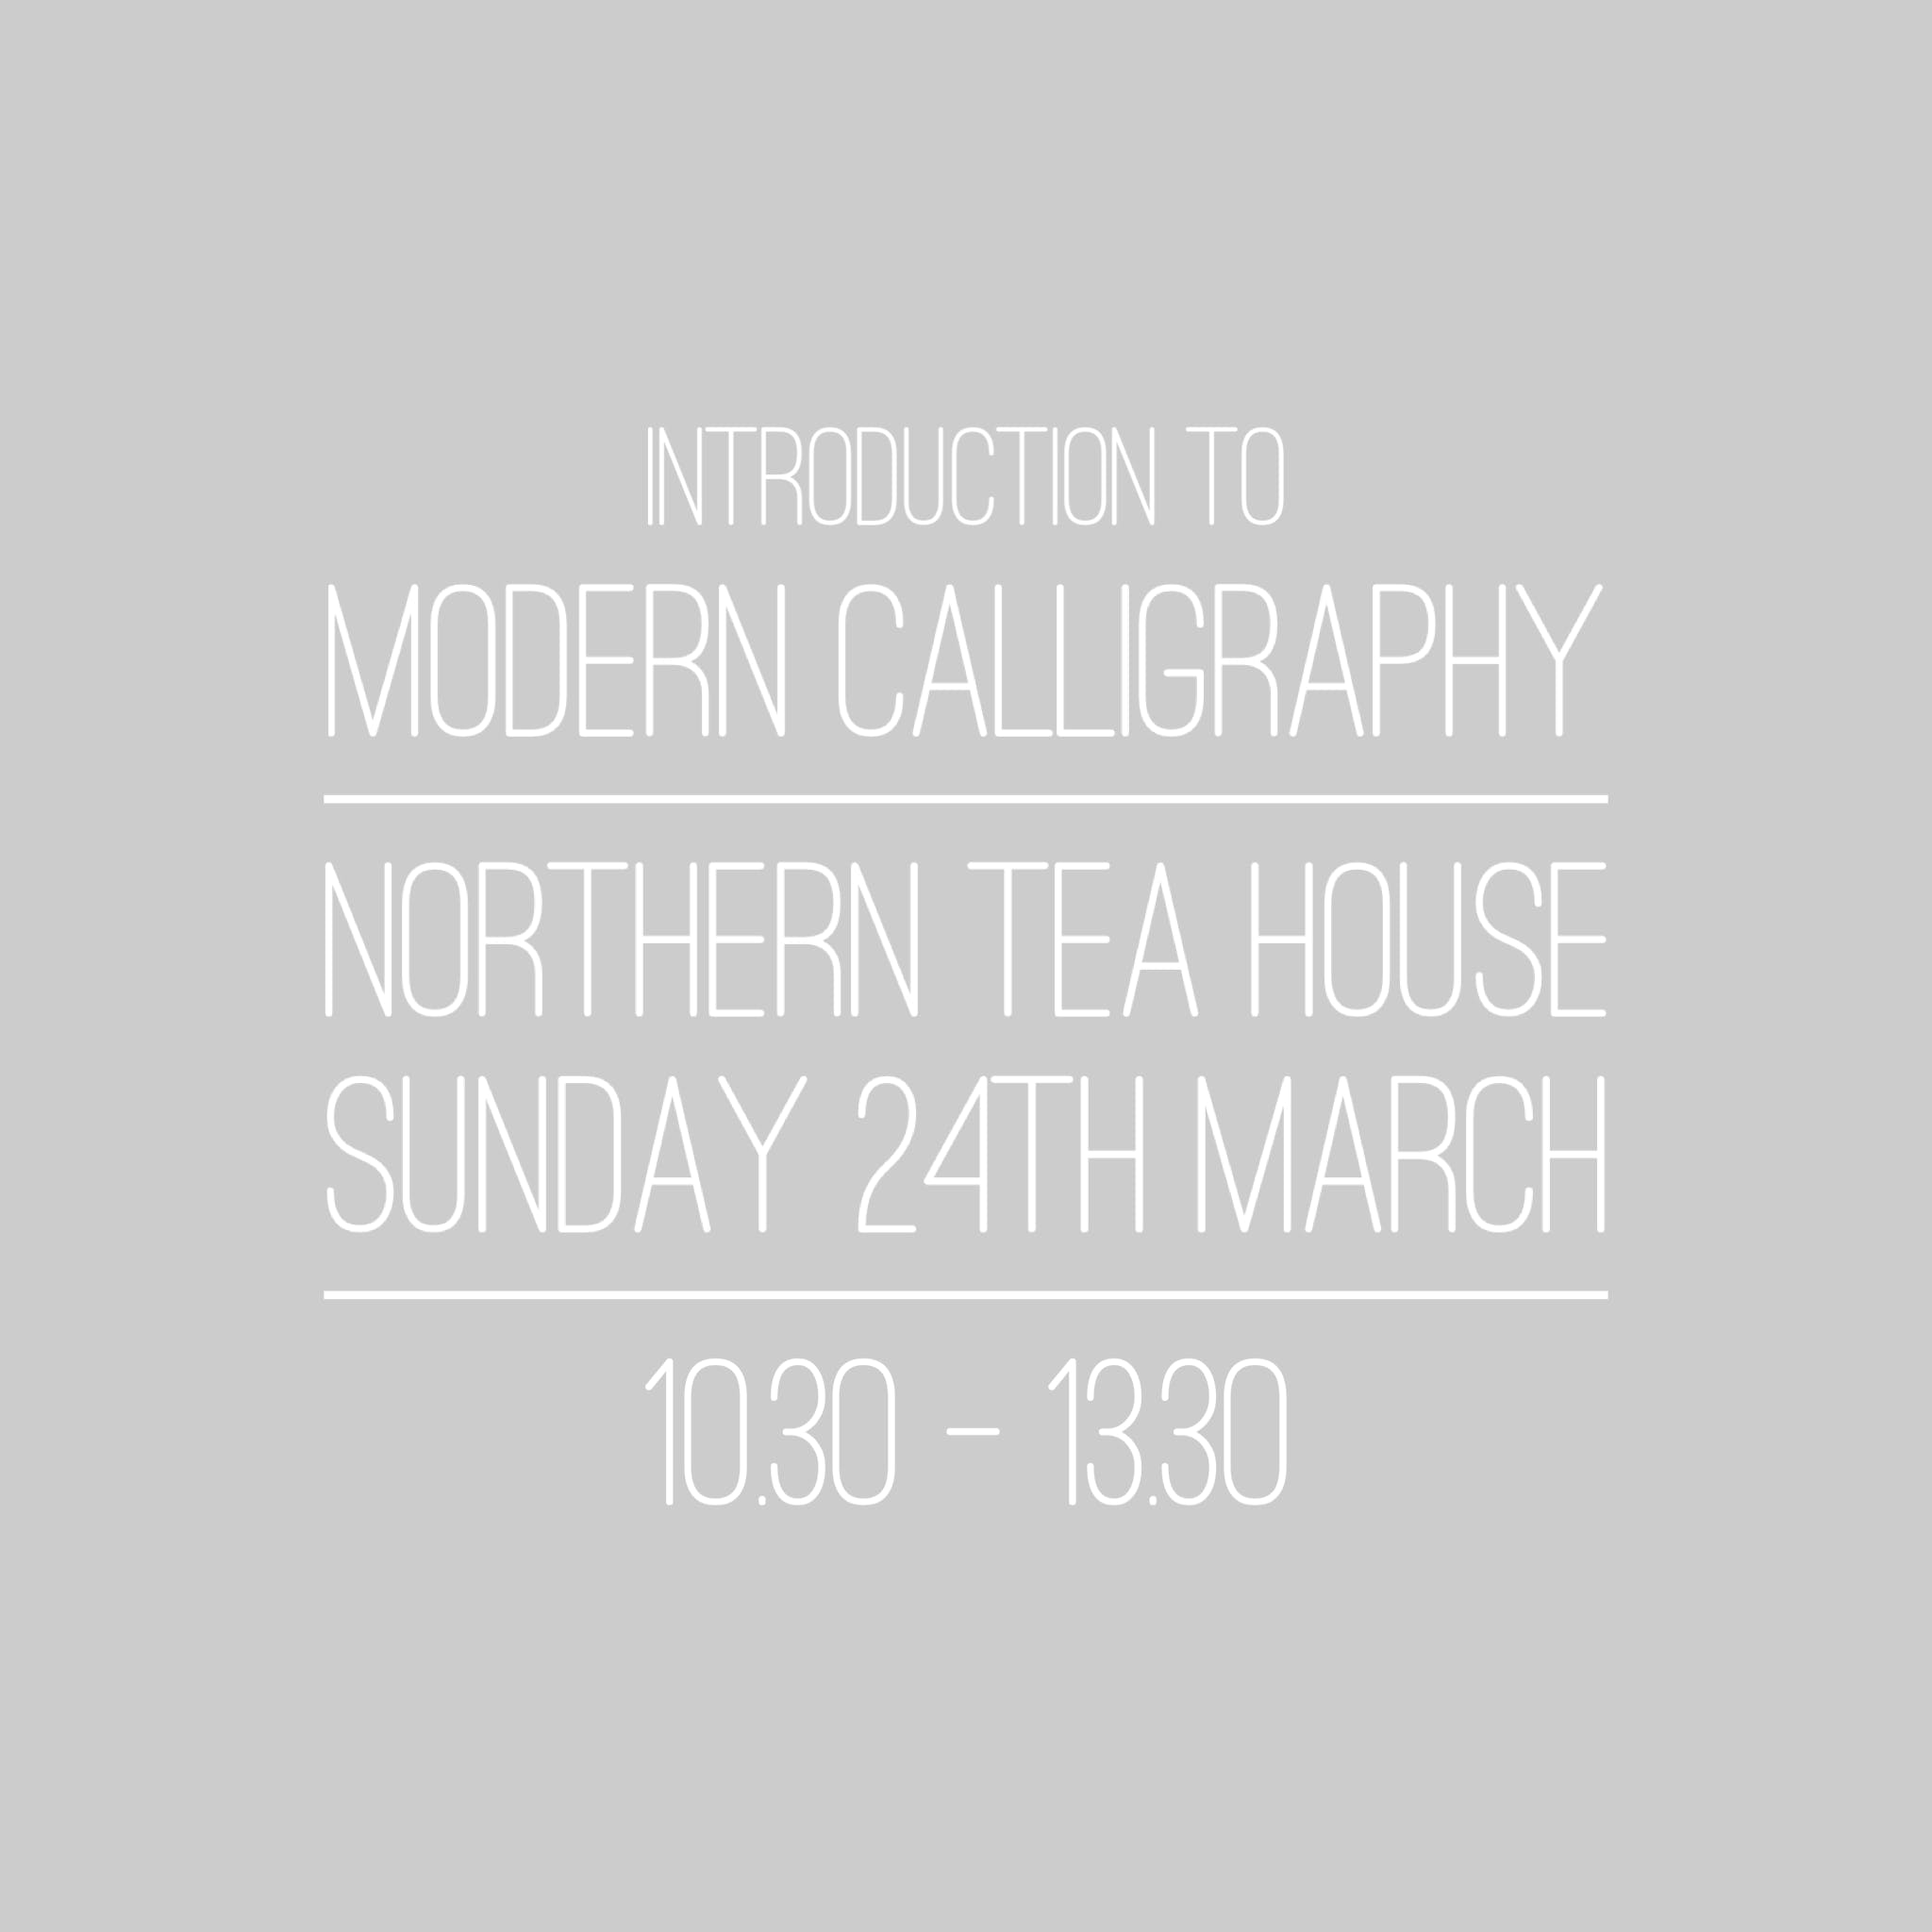 Introduction to Modern Calligraphy - Huddersf